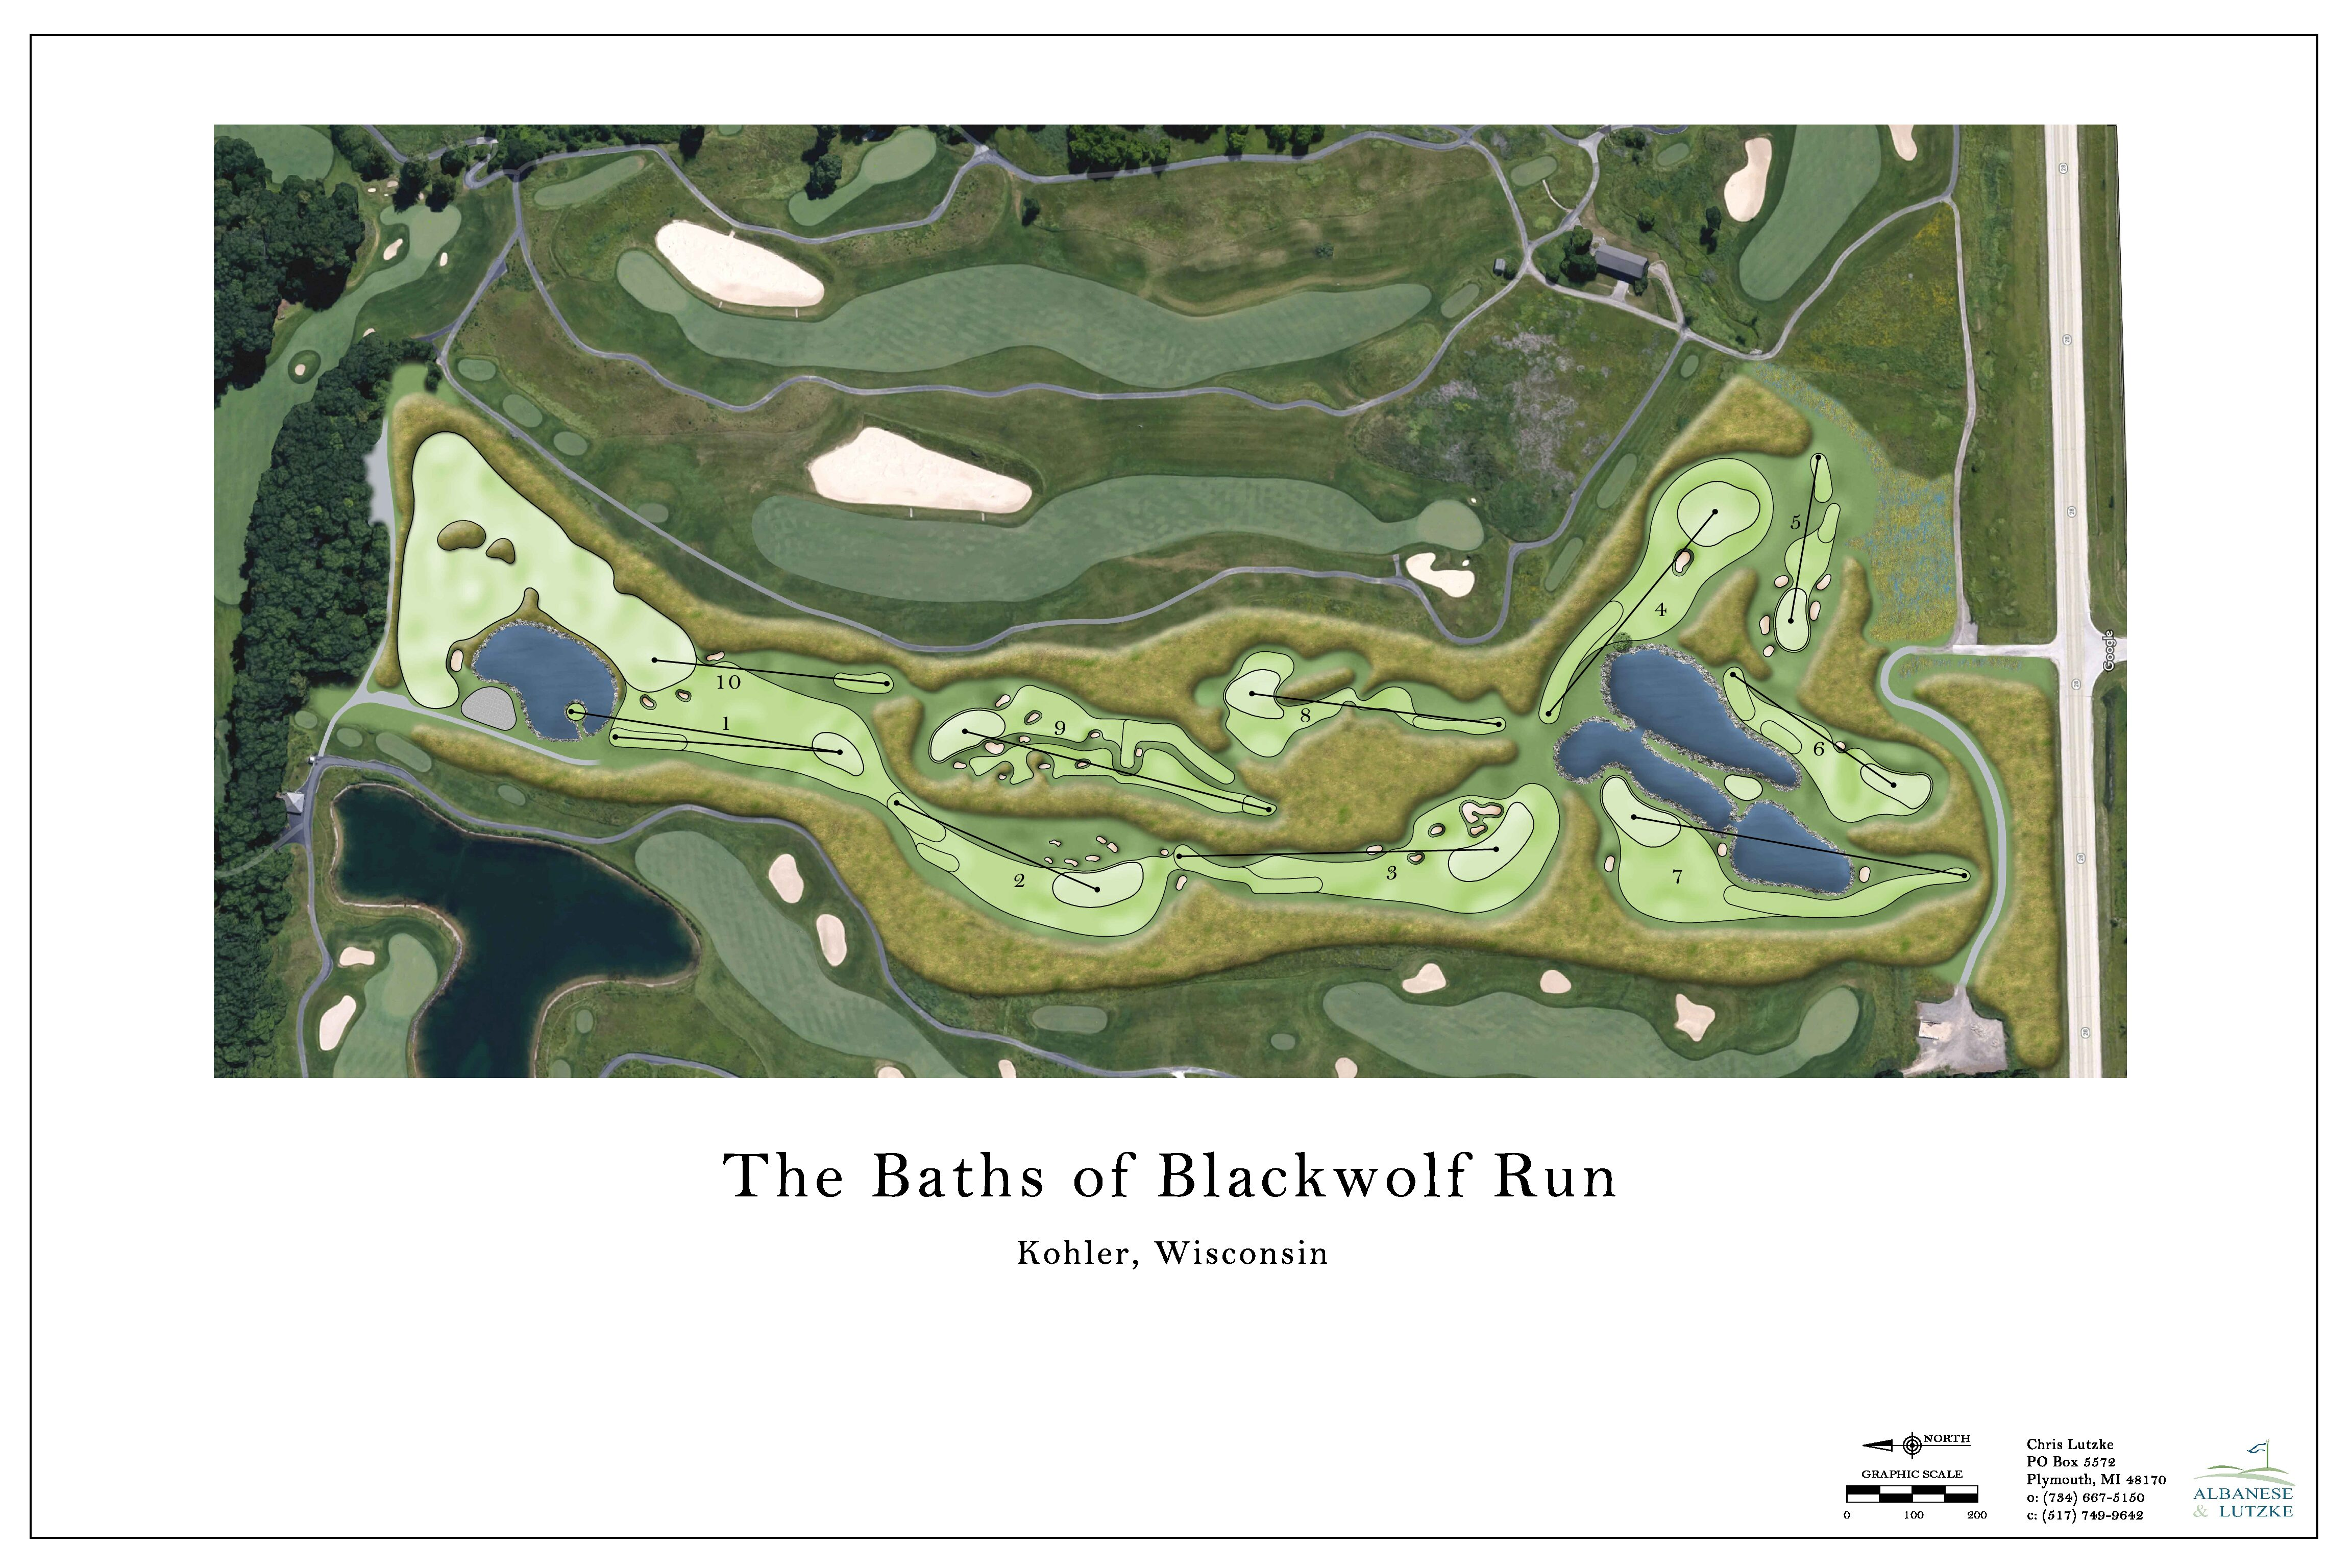 Destination Kohler Introduces The Baths of Blackwolf Run Which Will Include an Innovative 10-Hole Par 3 Course & Two-Acre Putting Course